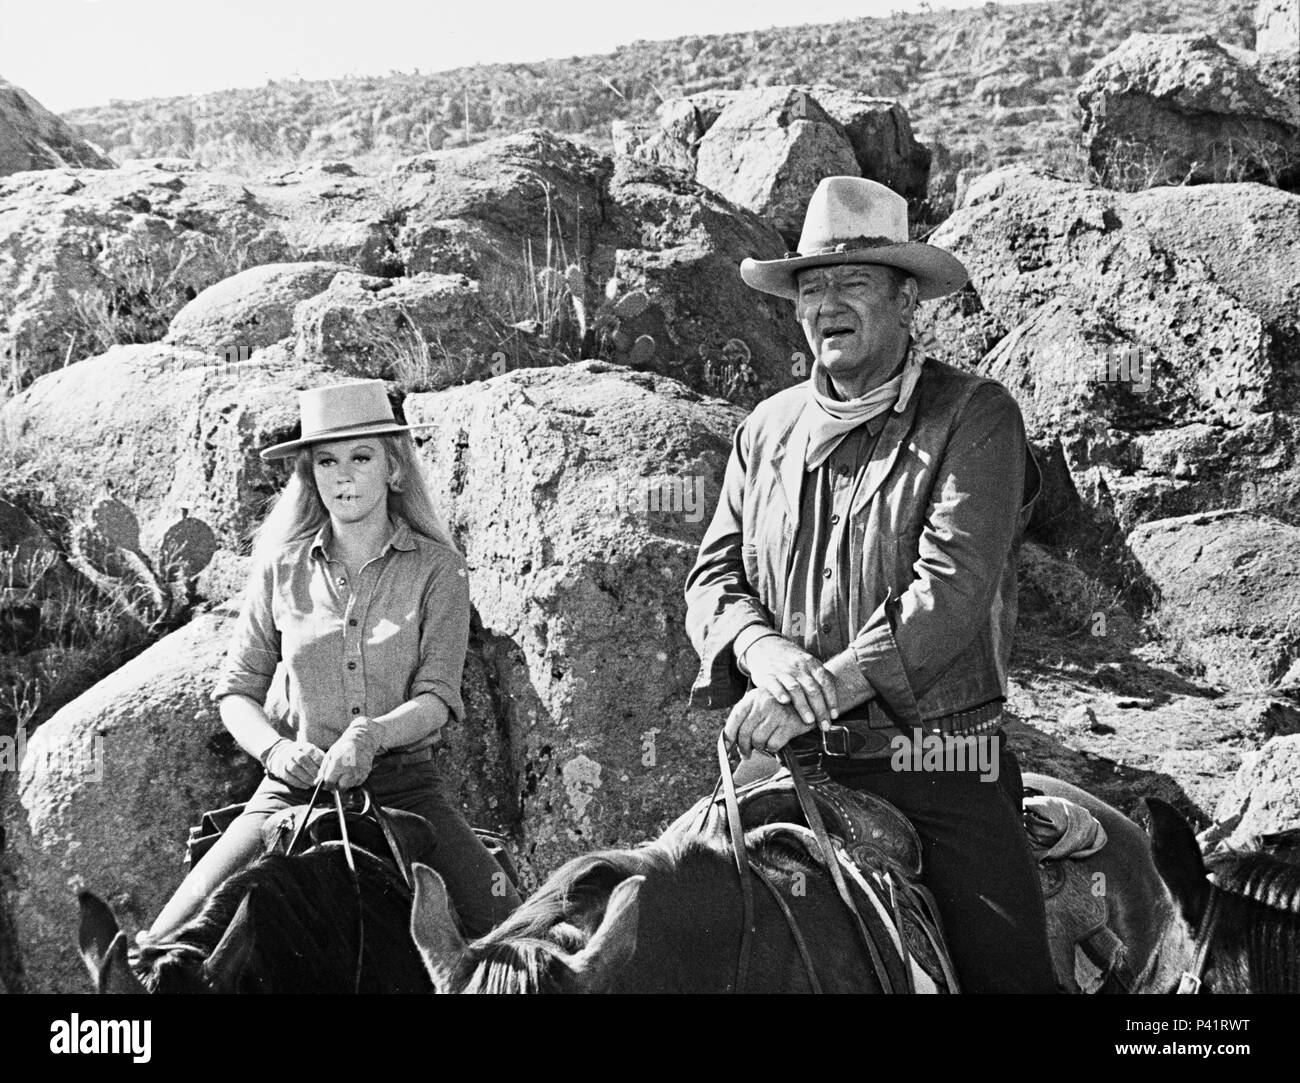 Original Film Title: THE TRAIN ROBBERS.  English Title: THE TRAIN ROBBERS.  Film Director: BURT KENNEDY.  Year: 1973.  Stars: JOHN WAYNE; ANN-MARGRET. Credit: WARNER BROTHERS / Album - Stock Image